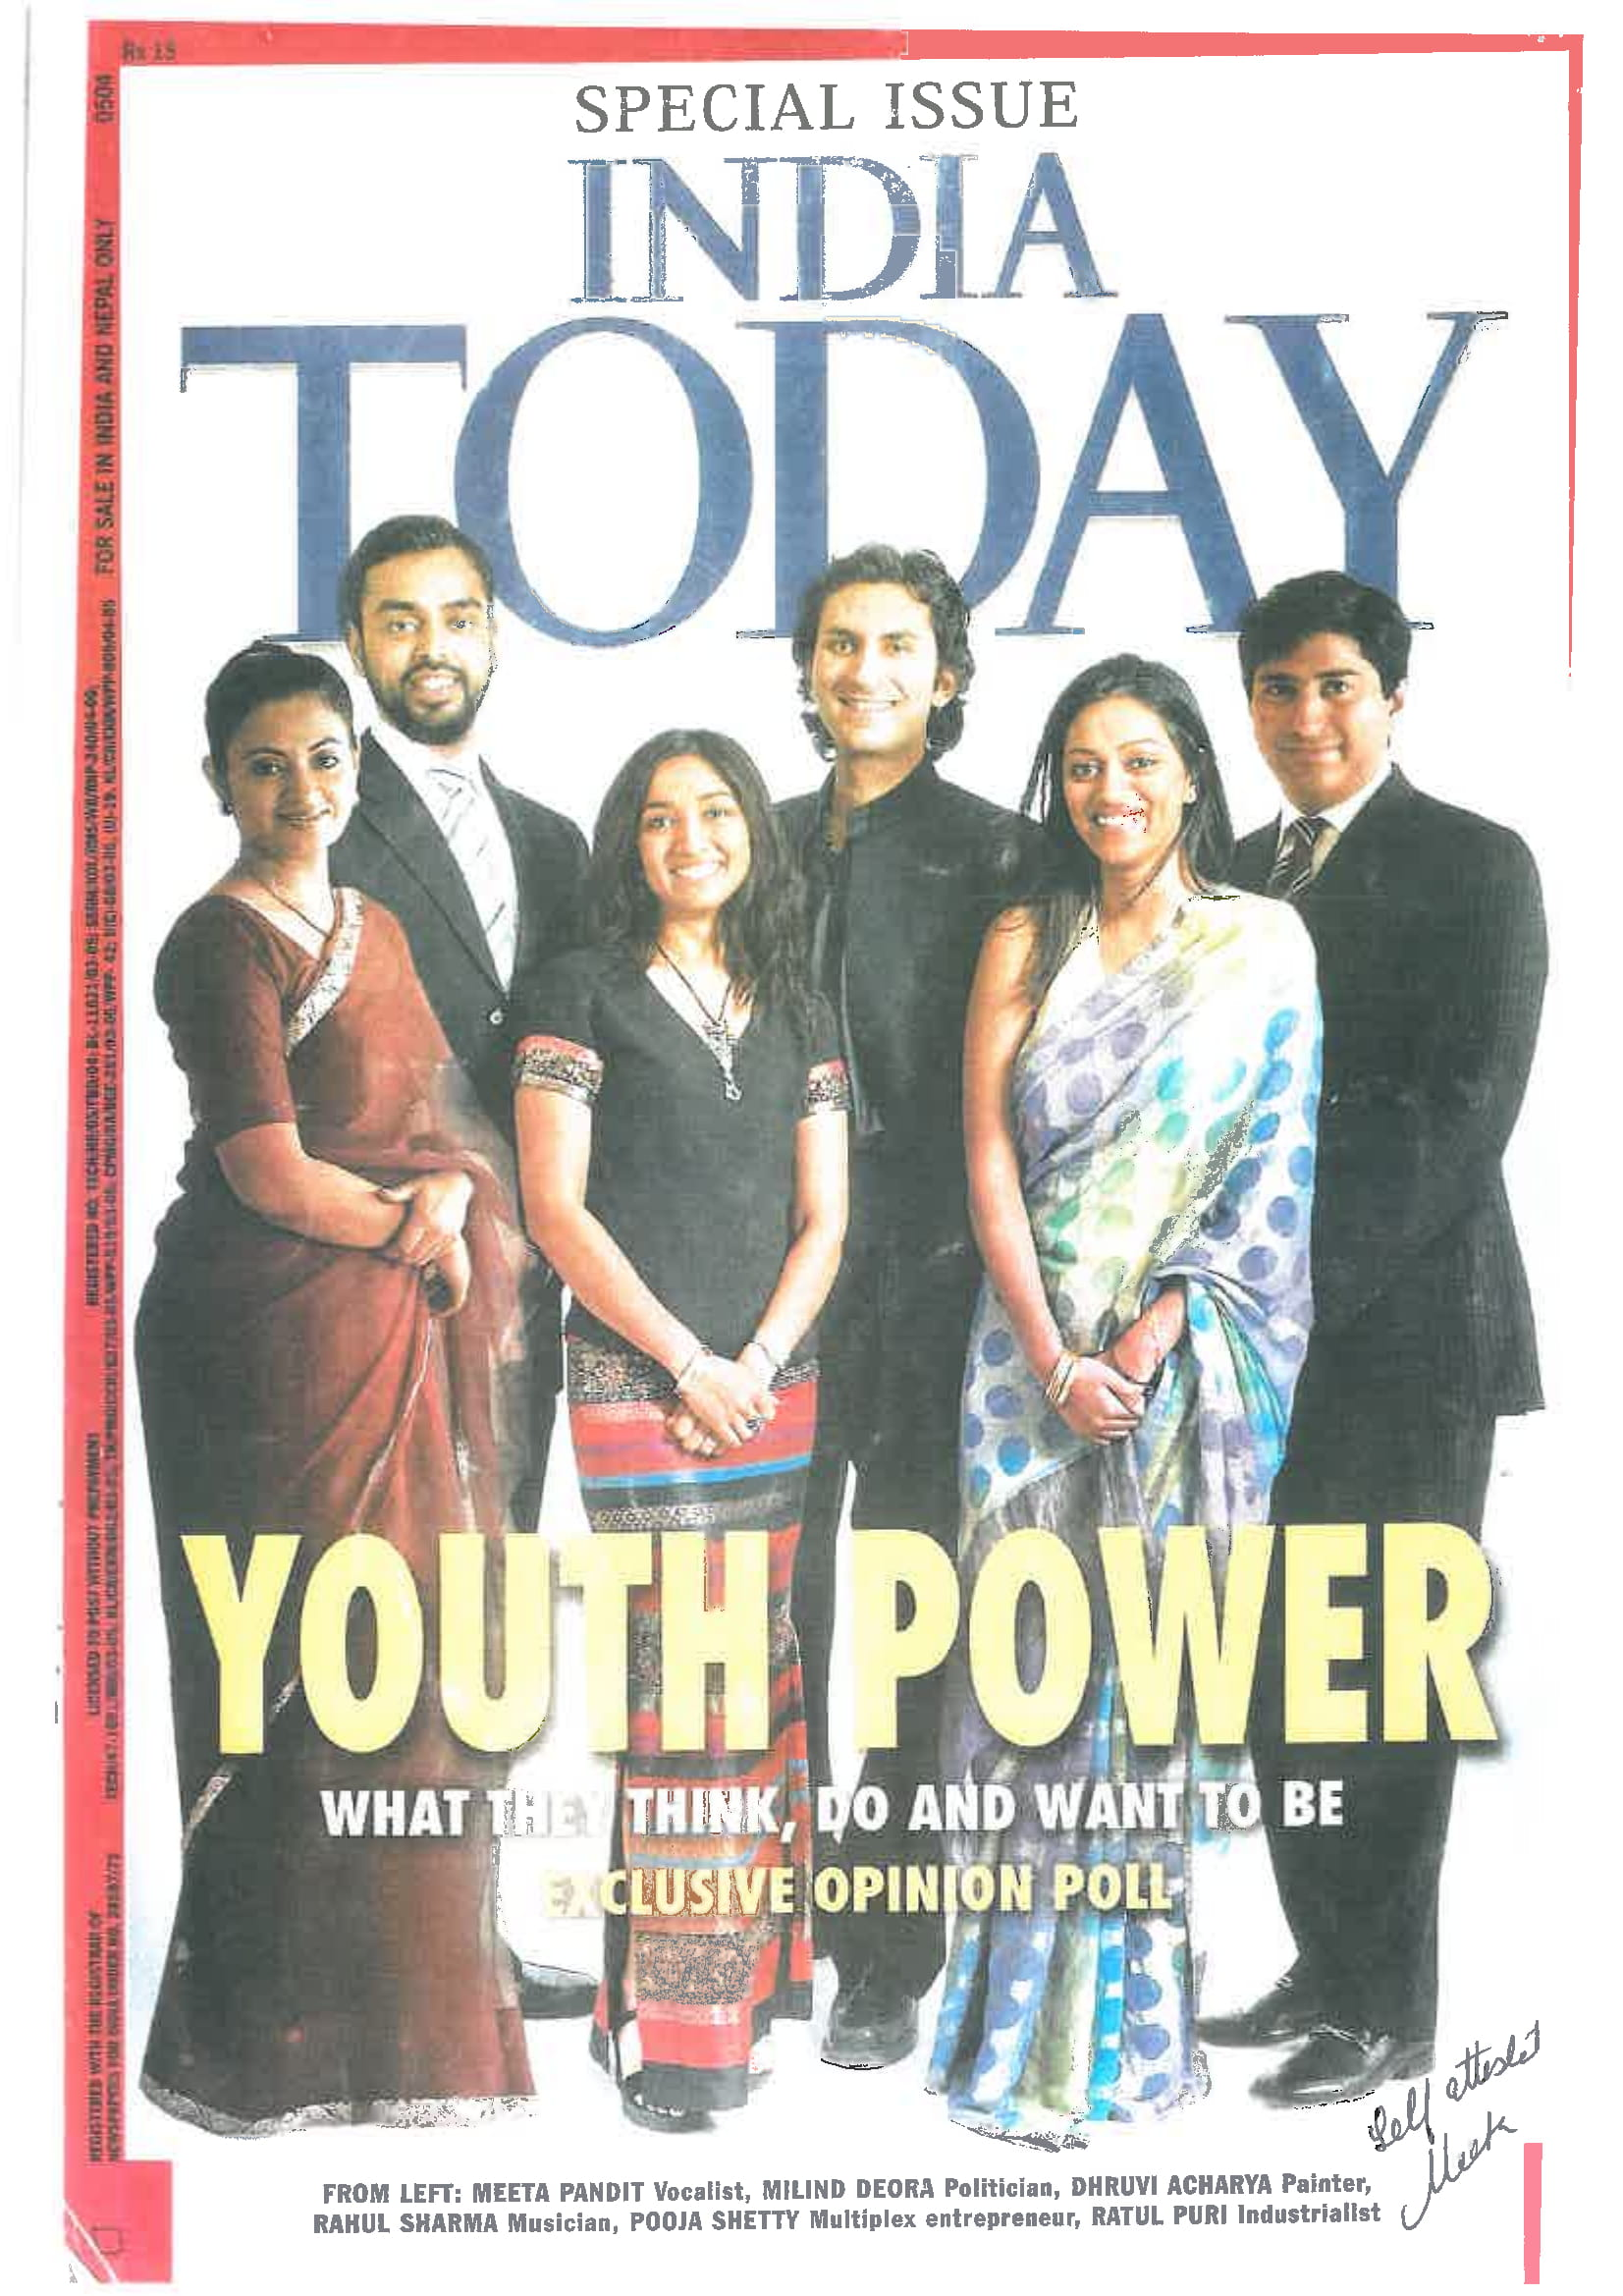 Press India Today Cover Pge ENG-1